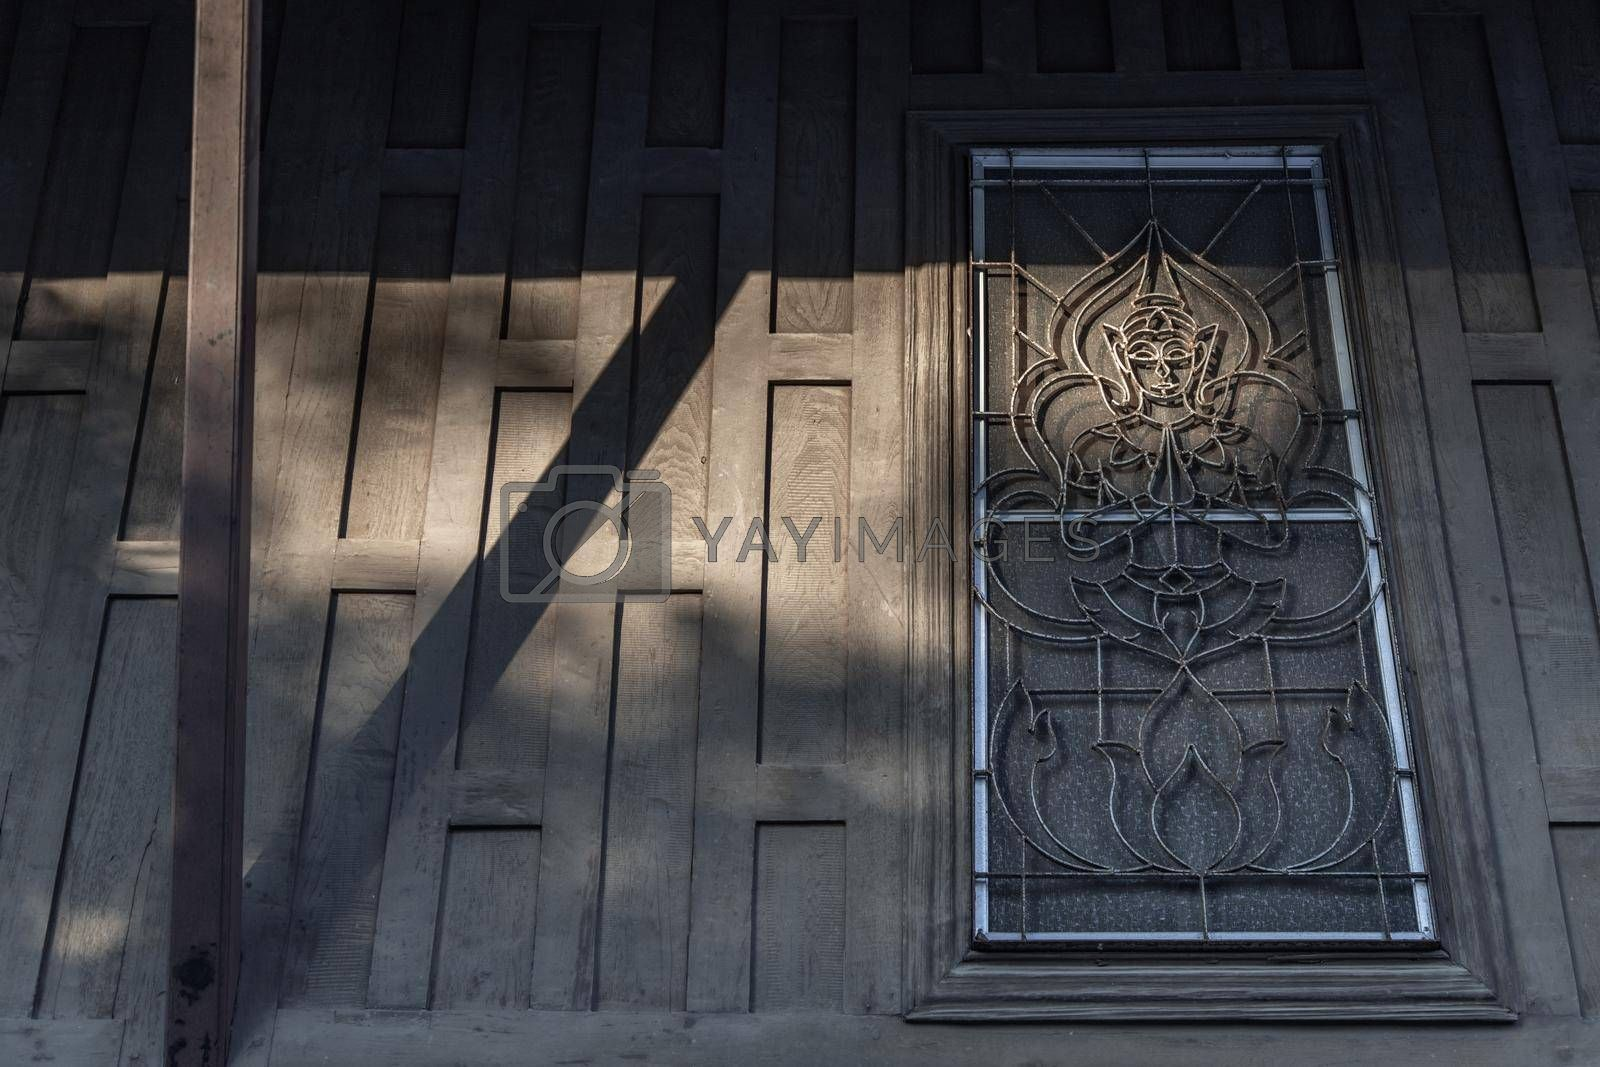 Bangkok, Thailand - Dec 9, 2019 :The shadow of the wooden beams shining on the window at ancient temple.